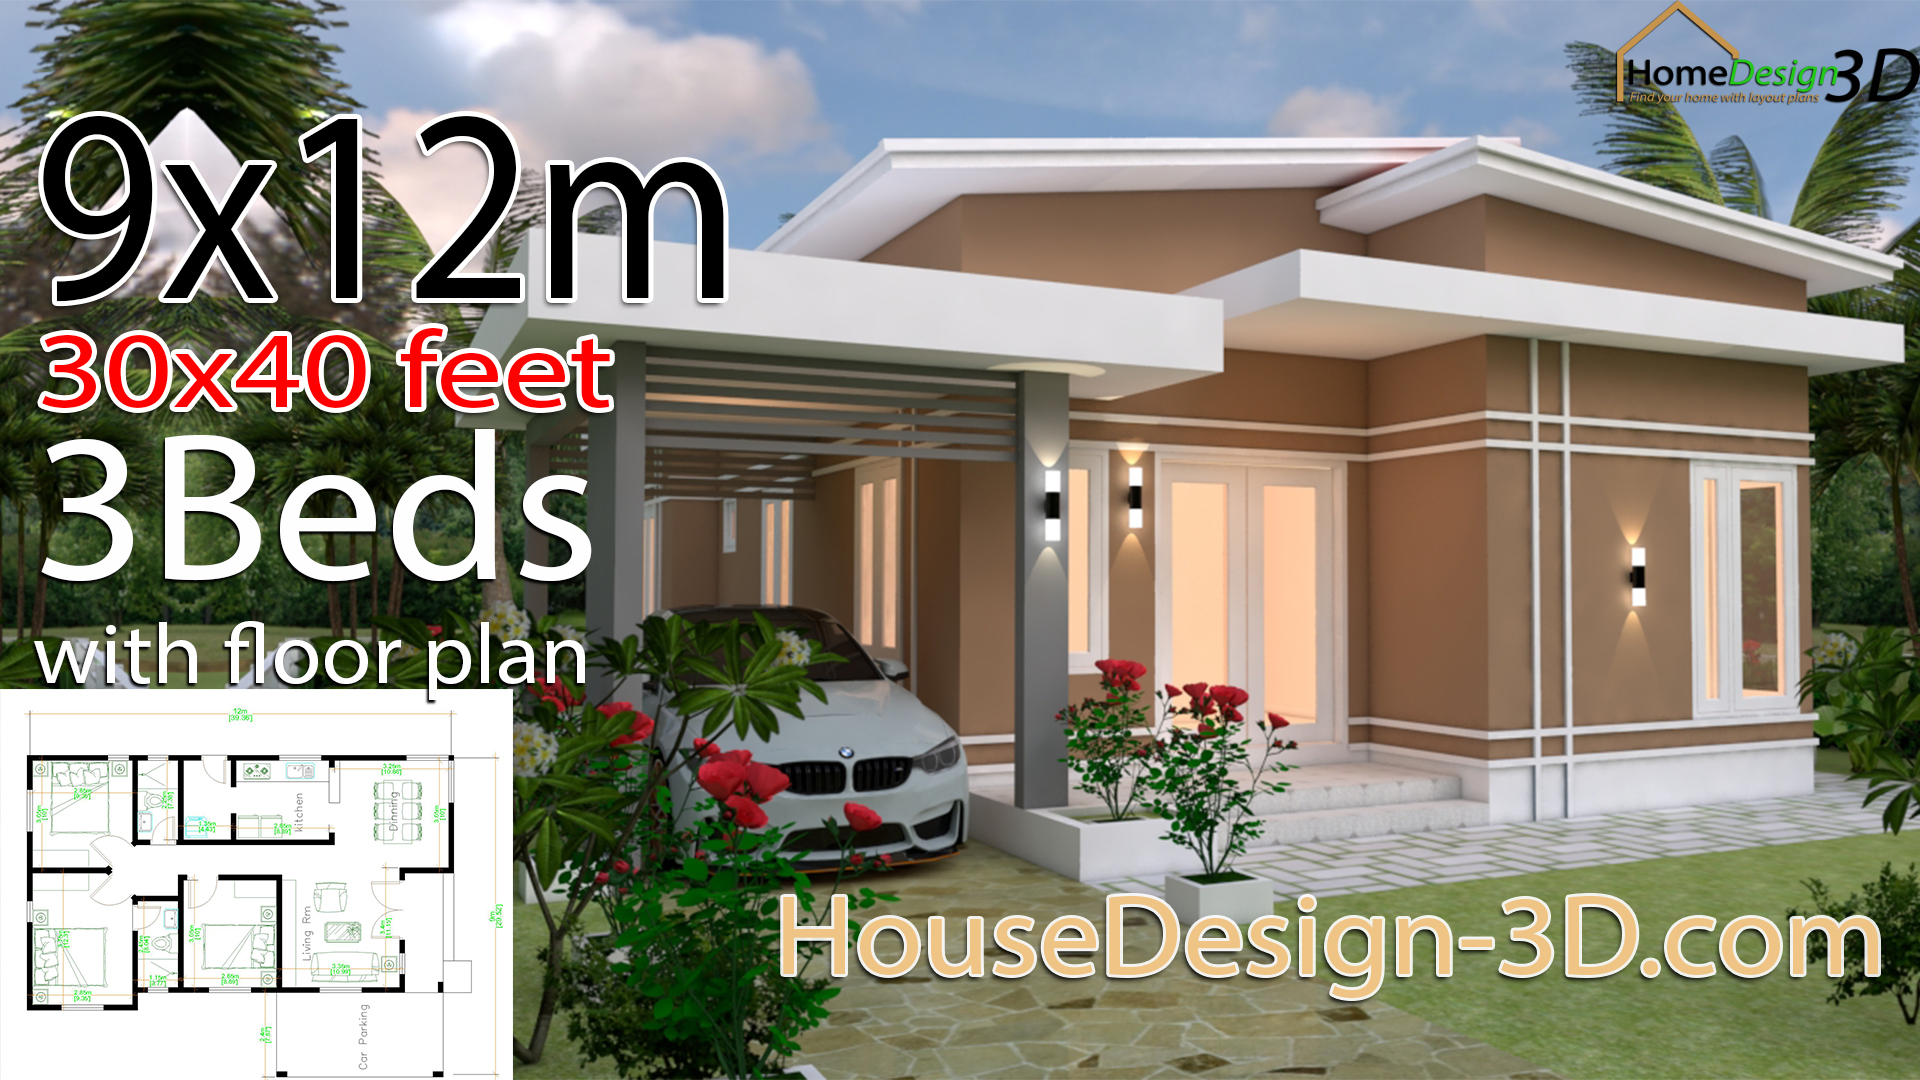 House Design 3d 9x12 Meter 30x40 Feet 3 Bedrooms Shed Roof House Design 3d